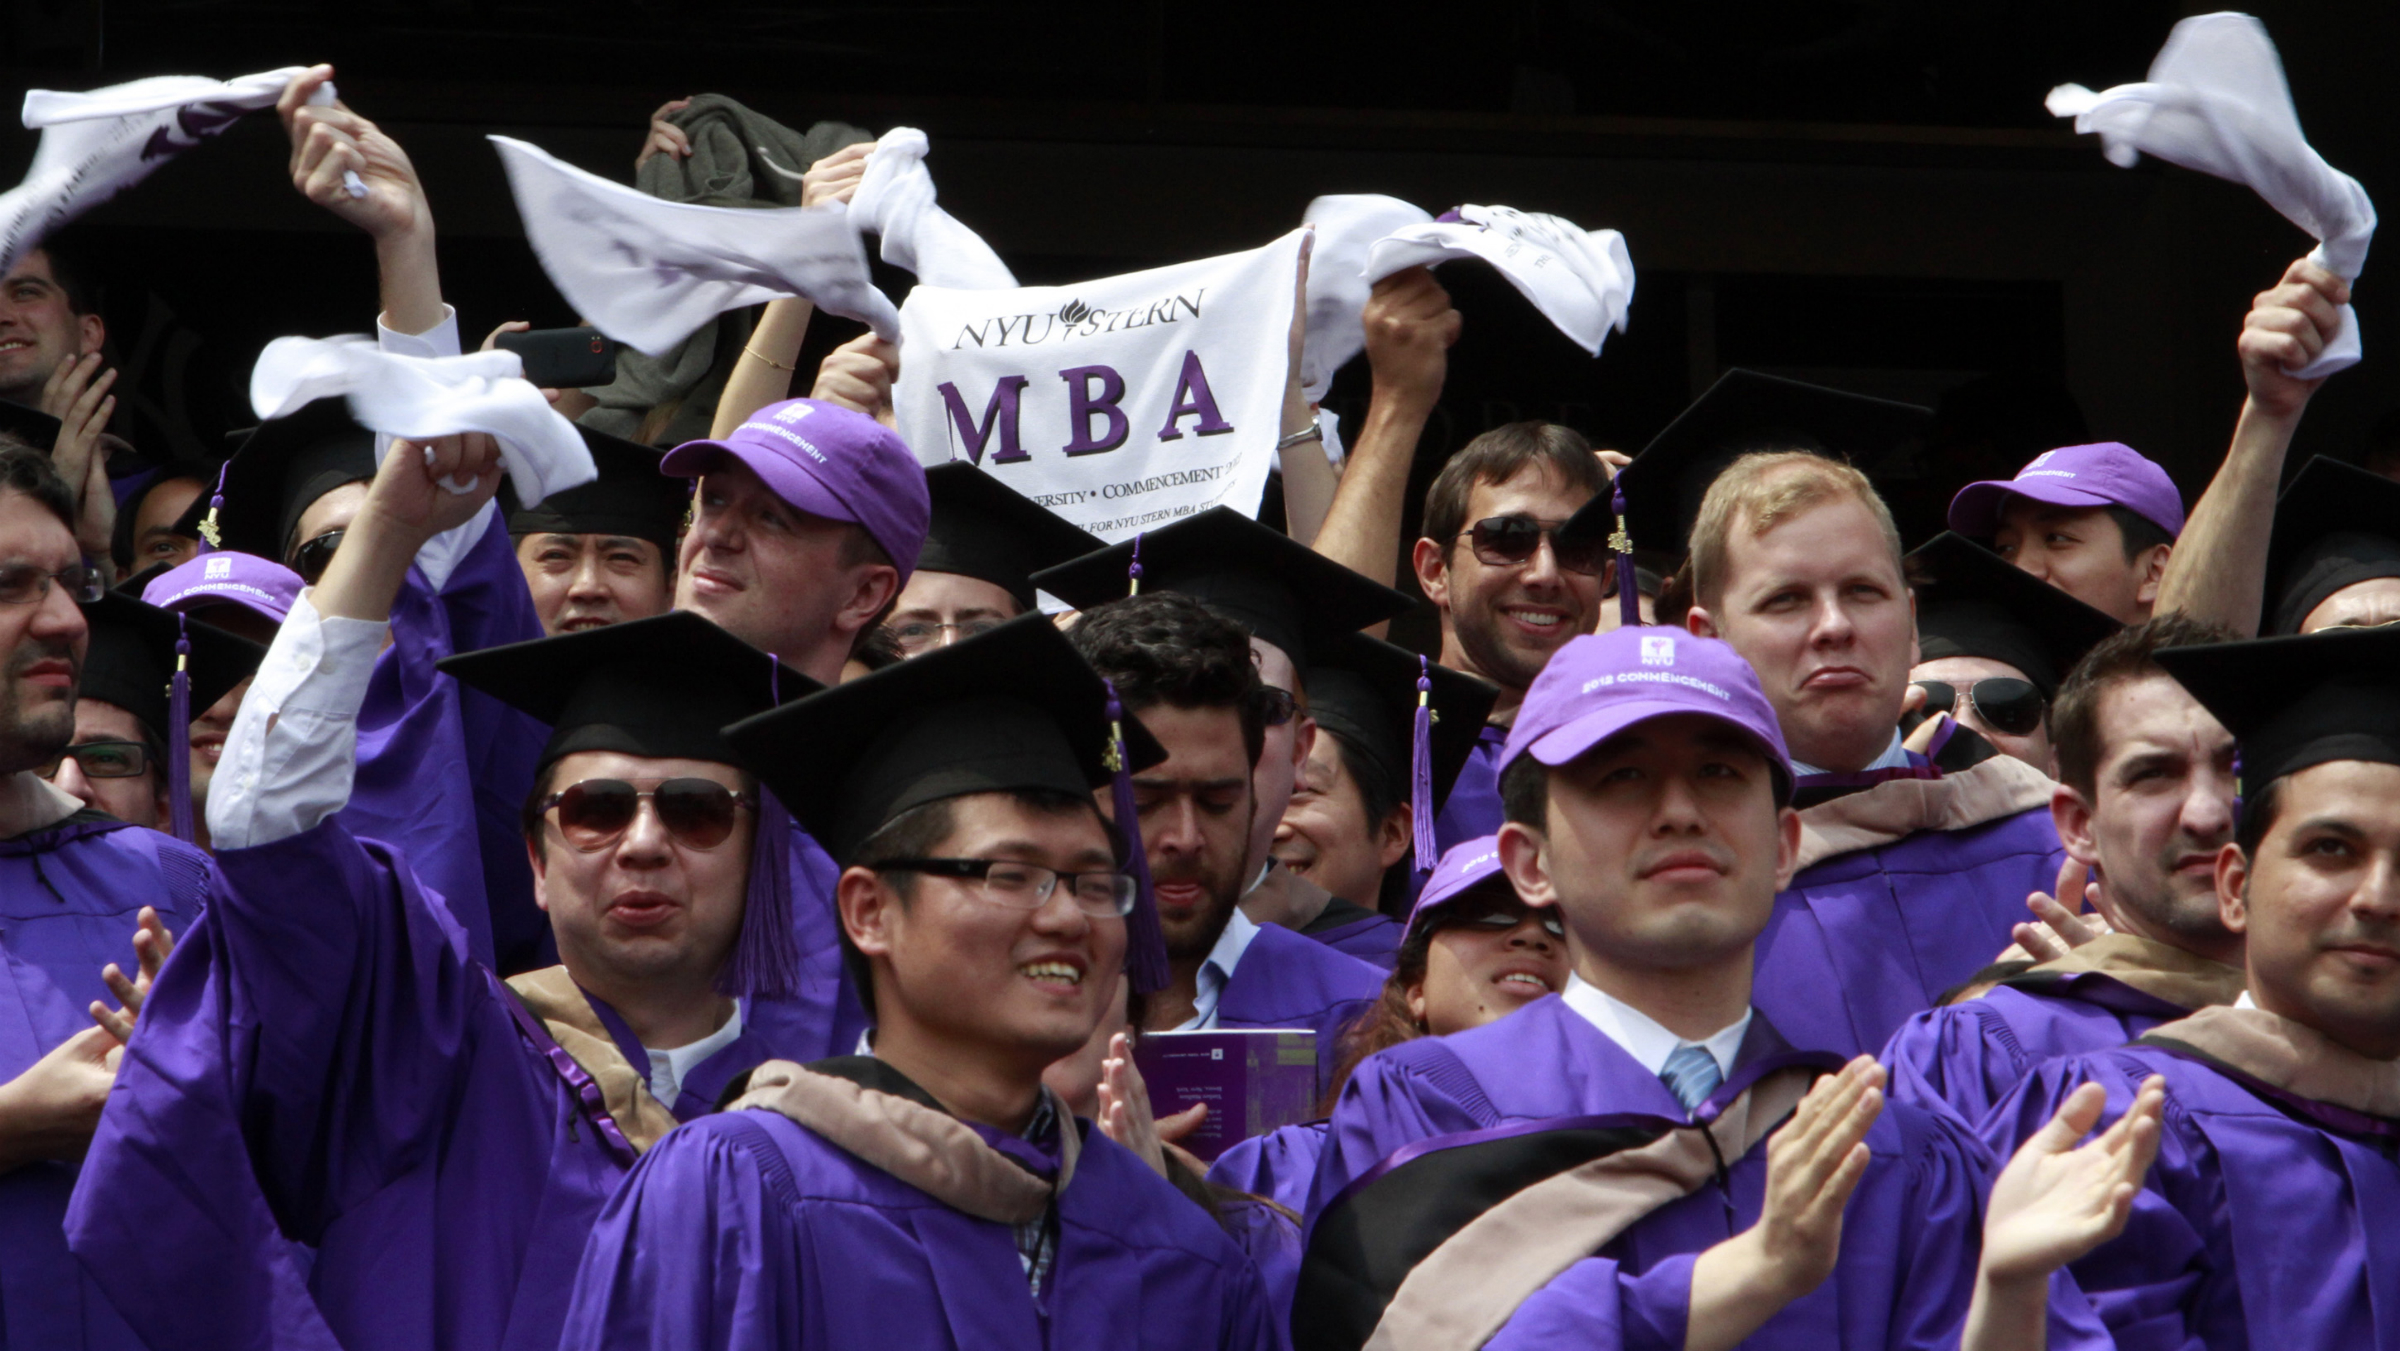 "Graduates from the Leonard N. Stern School of Business cheer and wave ""MBA"" towels as they are declared degree candidates, during the New York University 180th commencement ceremony at Yankee Stadium on Wednesday, May 16, 2012 in New York."